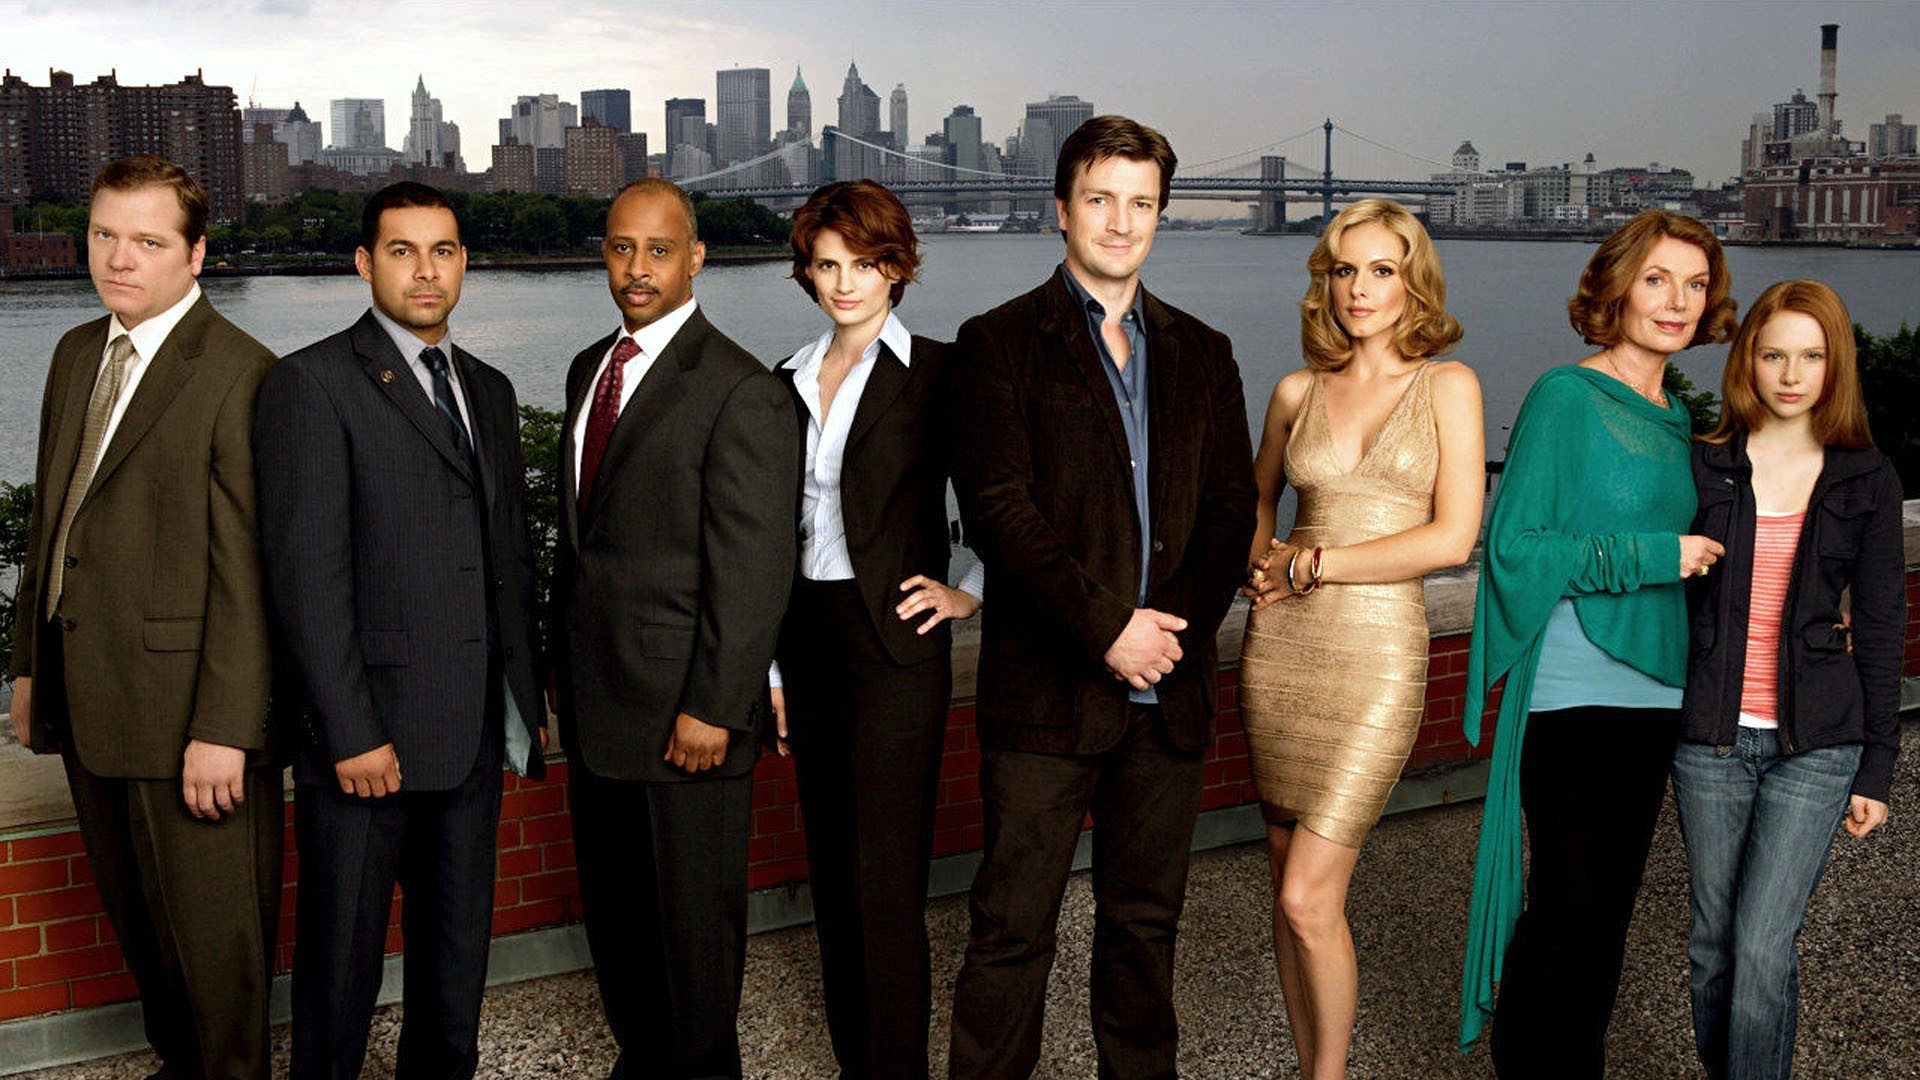 castle tv series   wallpaper high definition high